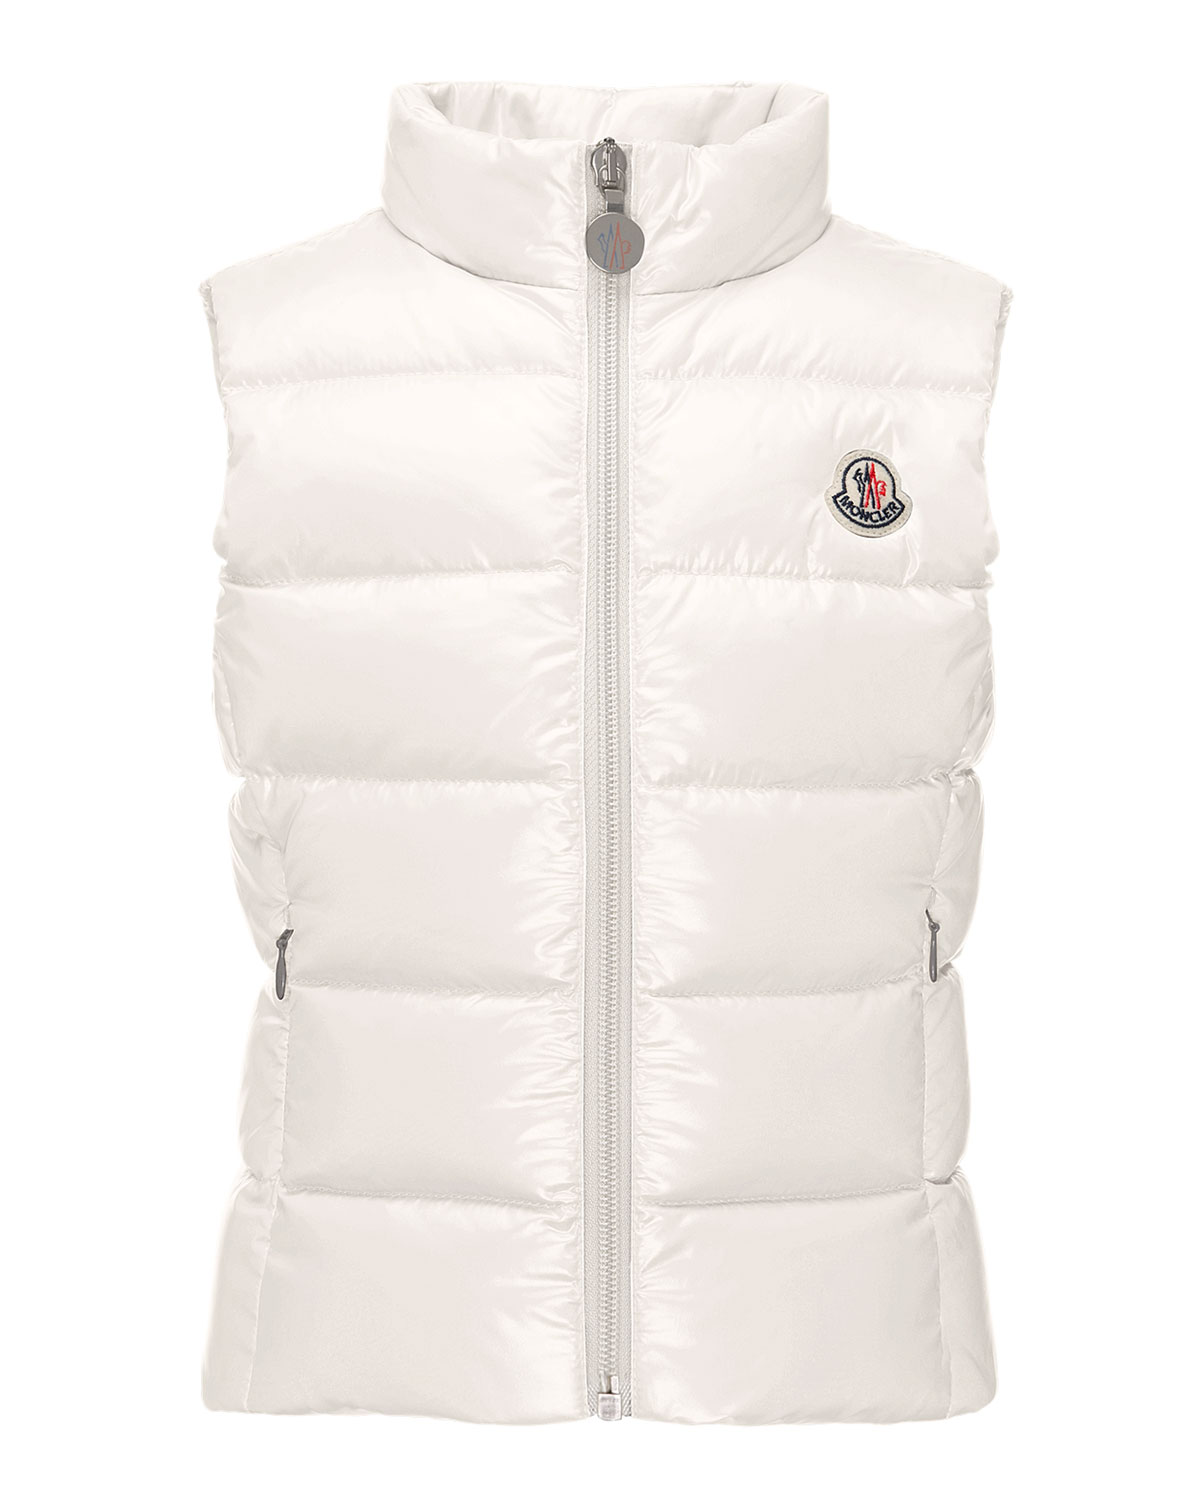 Moncler Ghany Quilted Down Vest, Cream, Size 4-6, Girl's, Size: 6, Natural